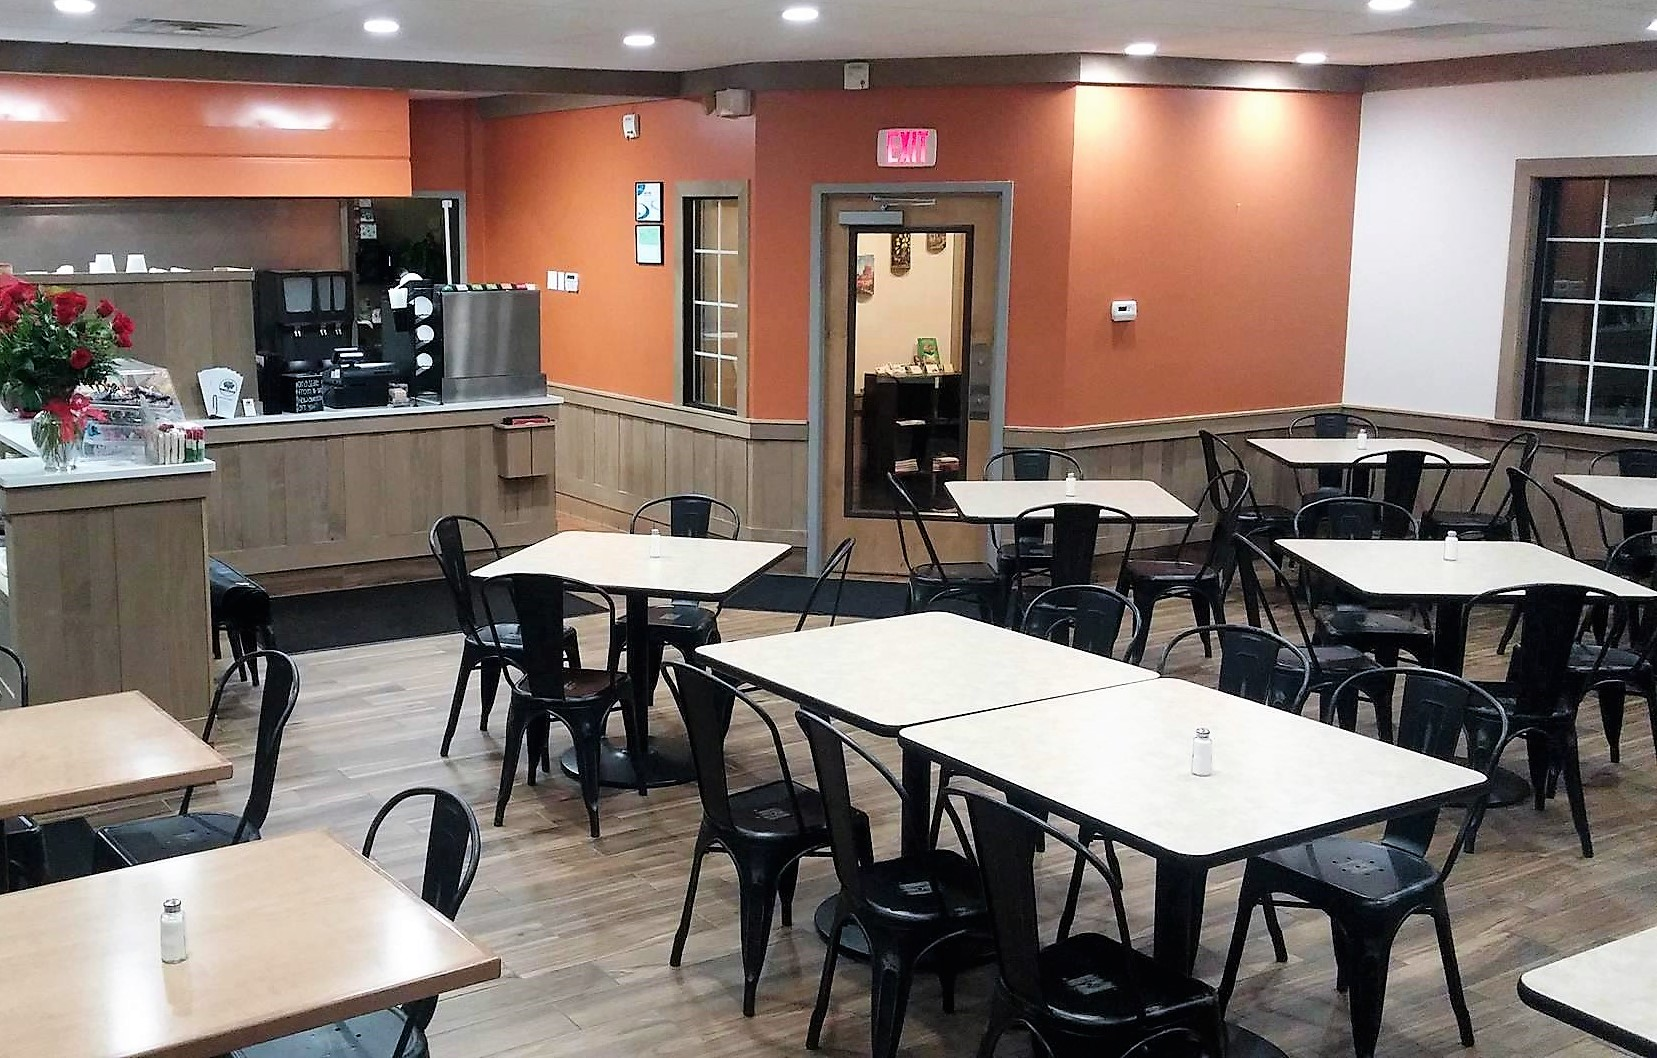 kendall college dining